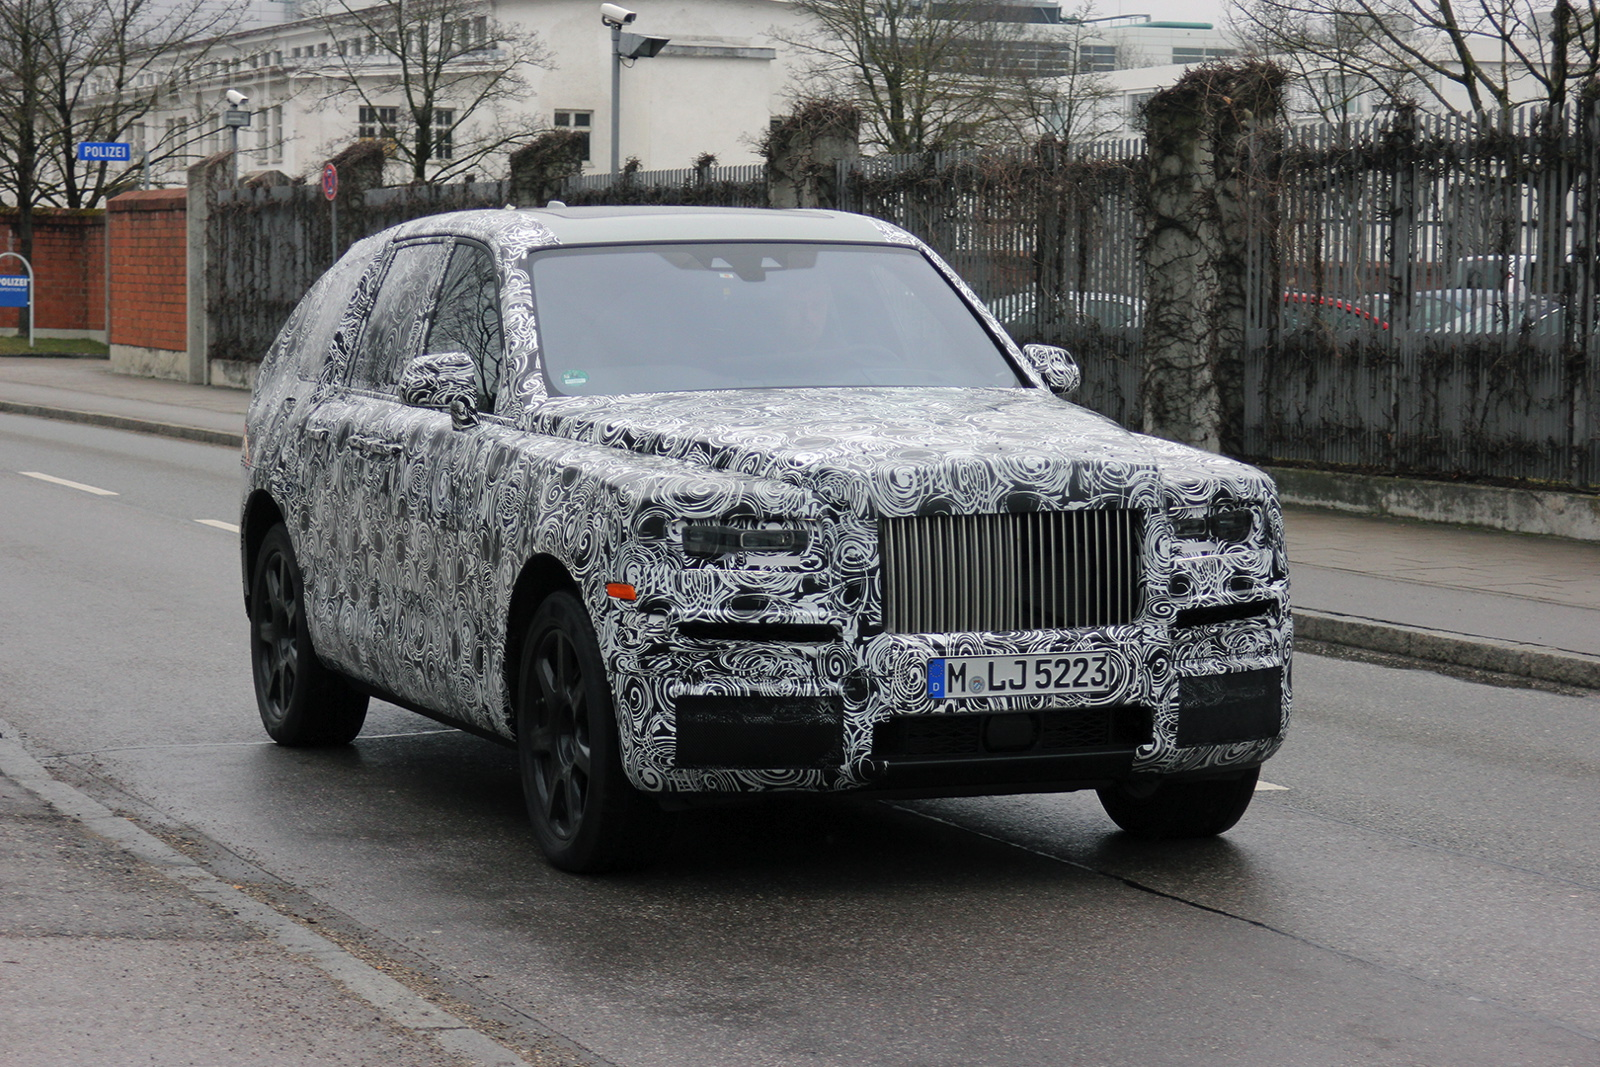 Upcoming Rolls Royce Suv Spotted In Germany